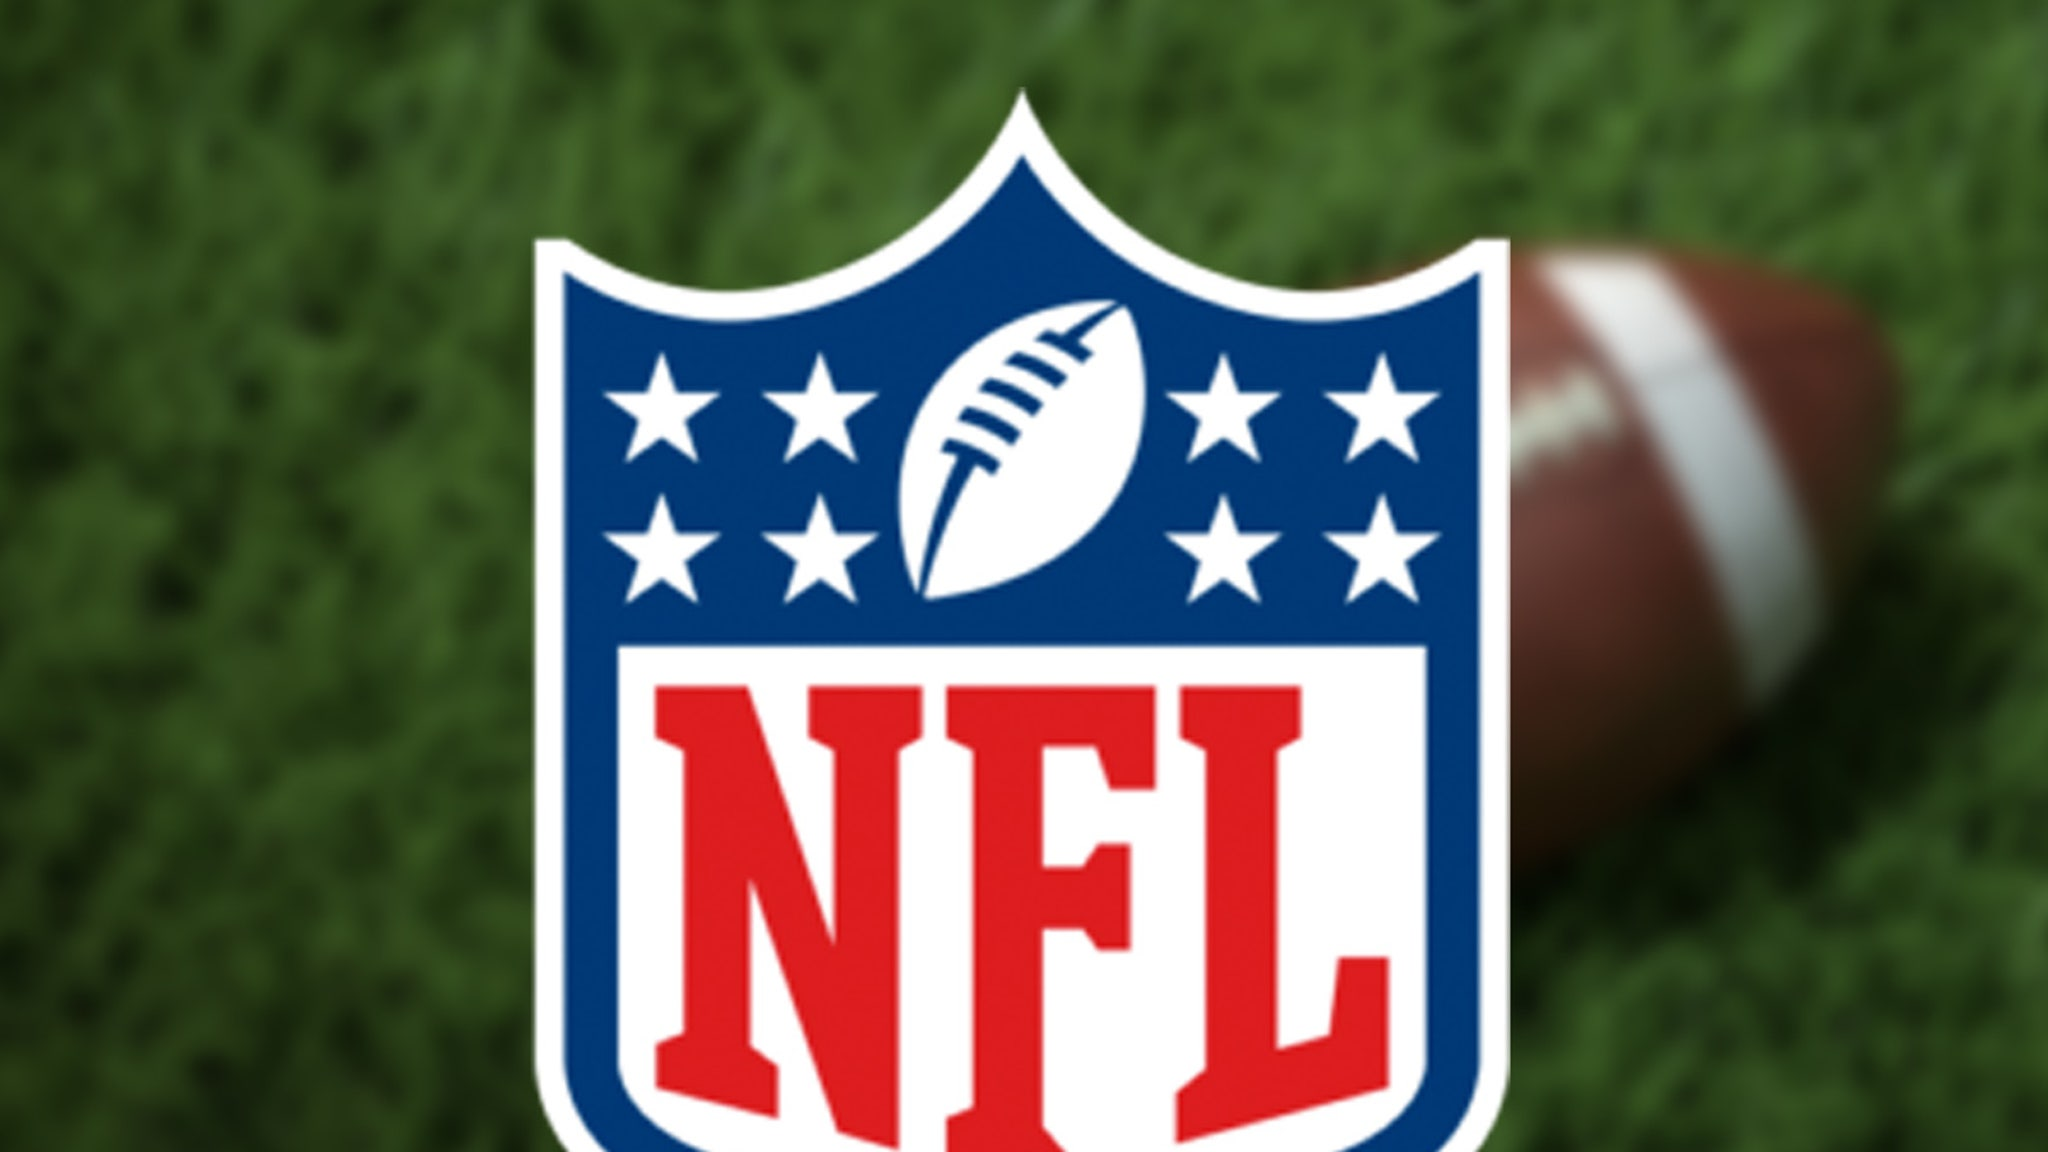 NFL Donating $250 Million To Help Fight Social Injustice